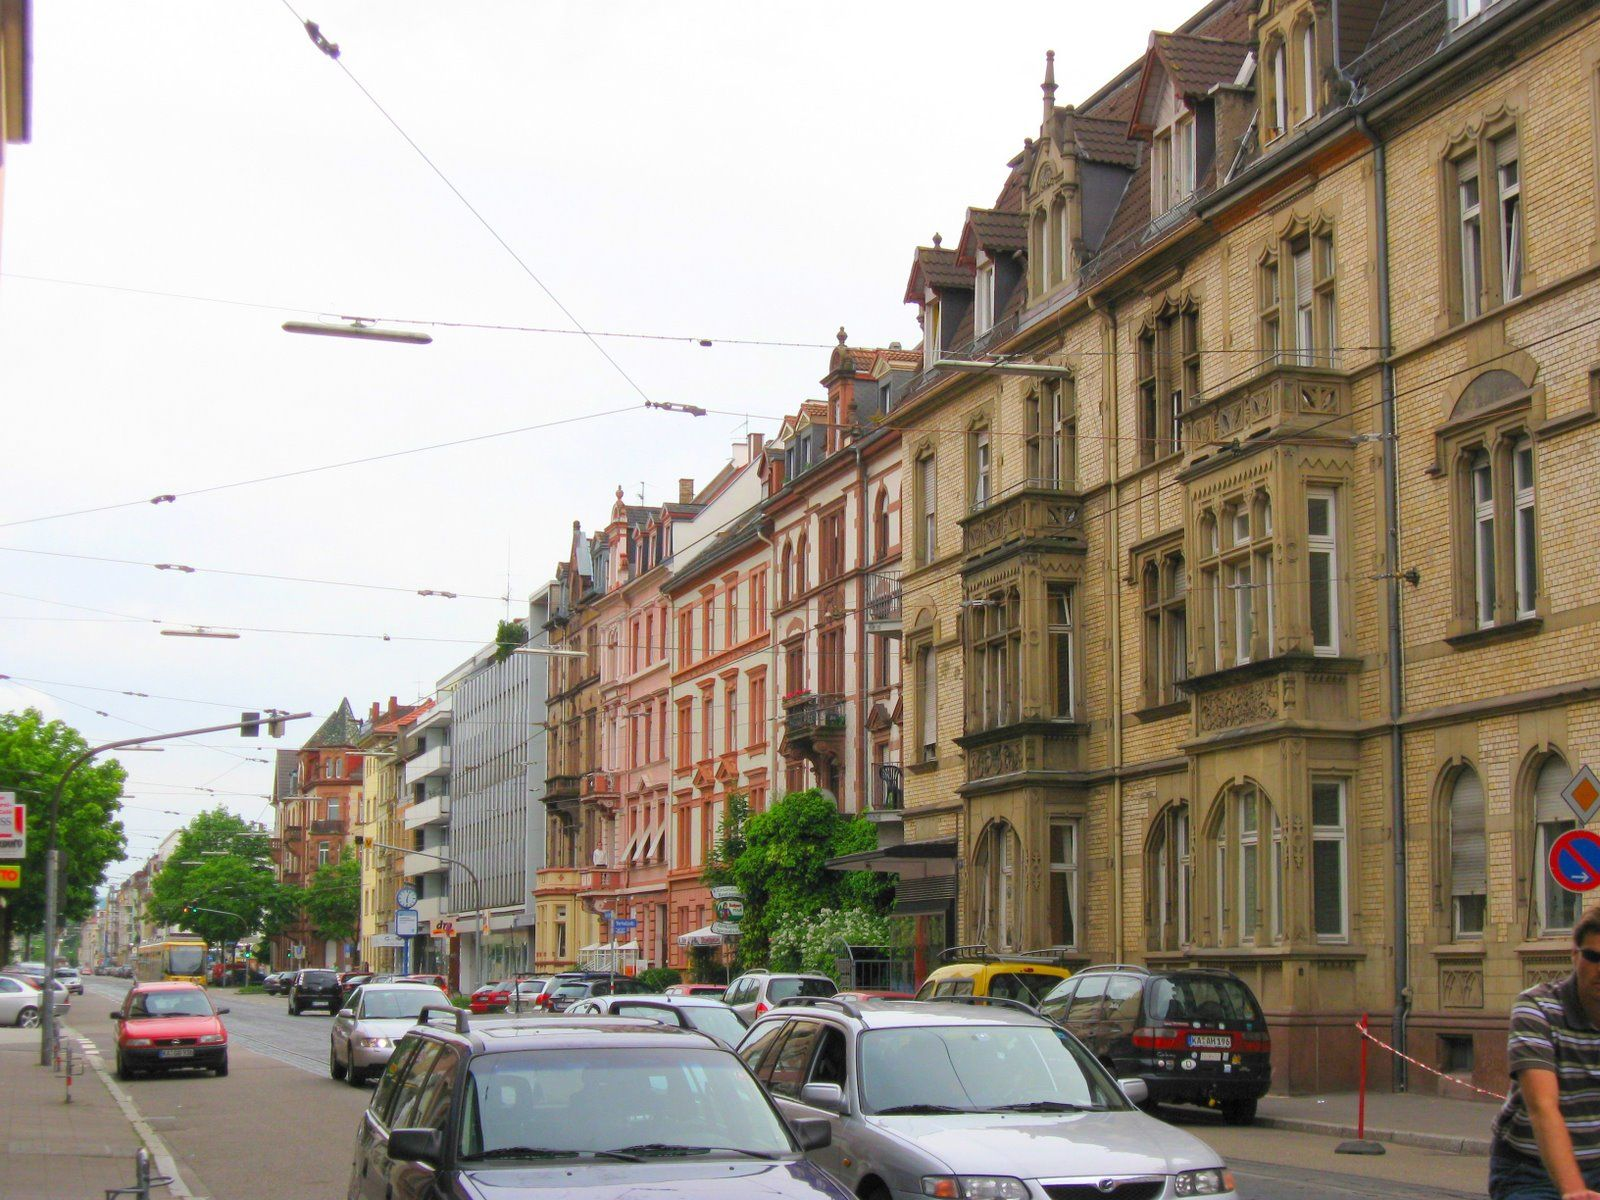 Karlsruhe, Germany Lived there for 3 years. My favorite